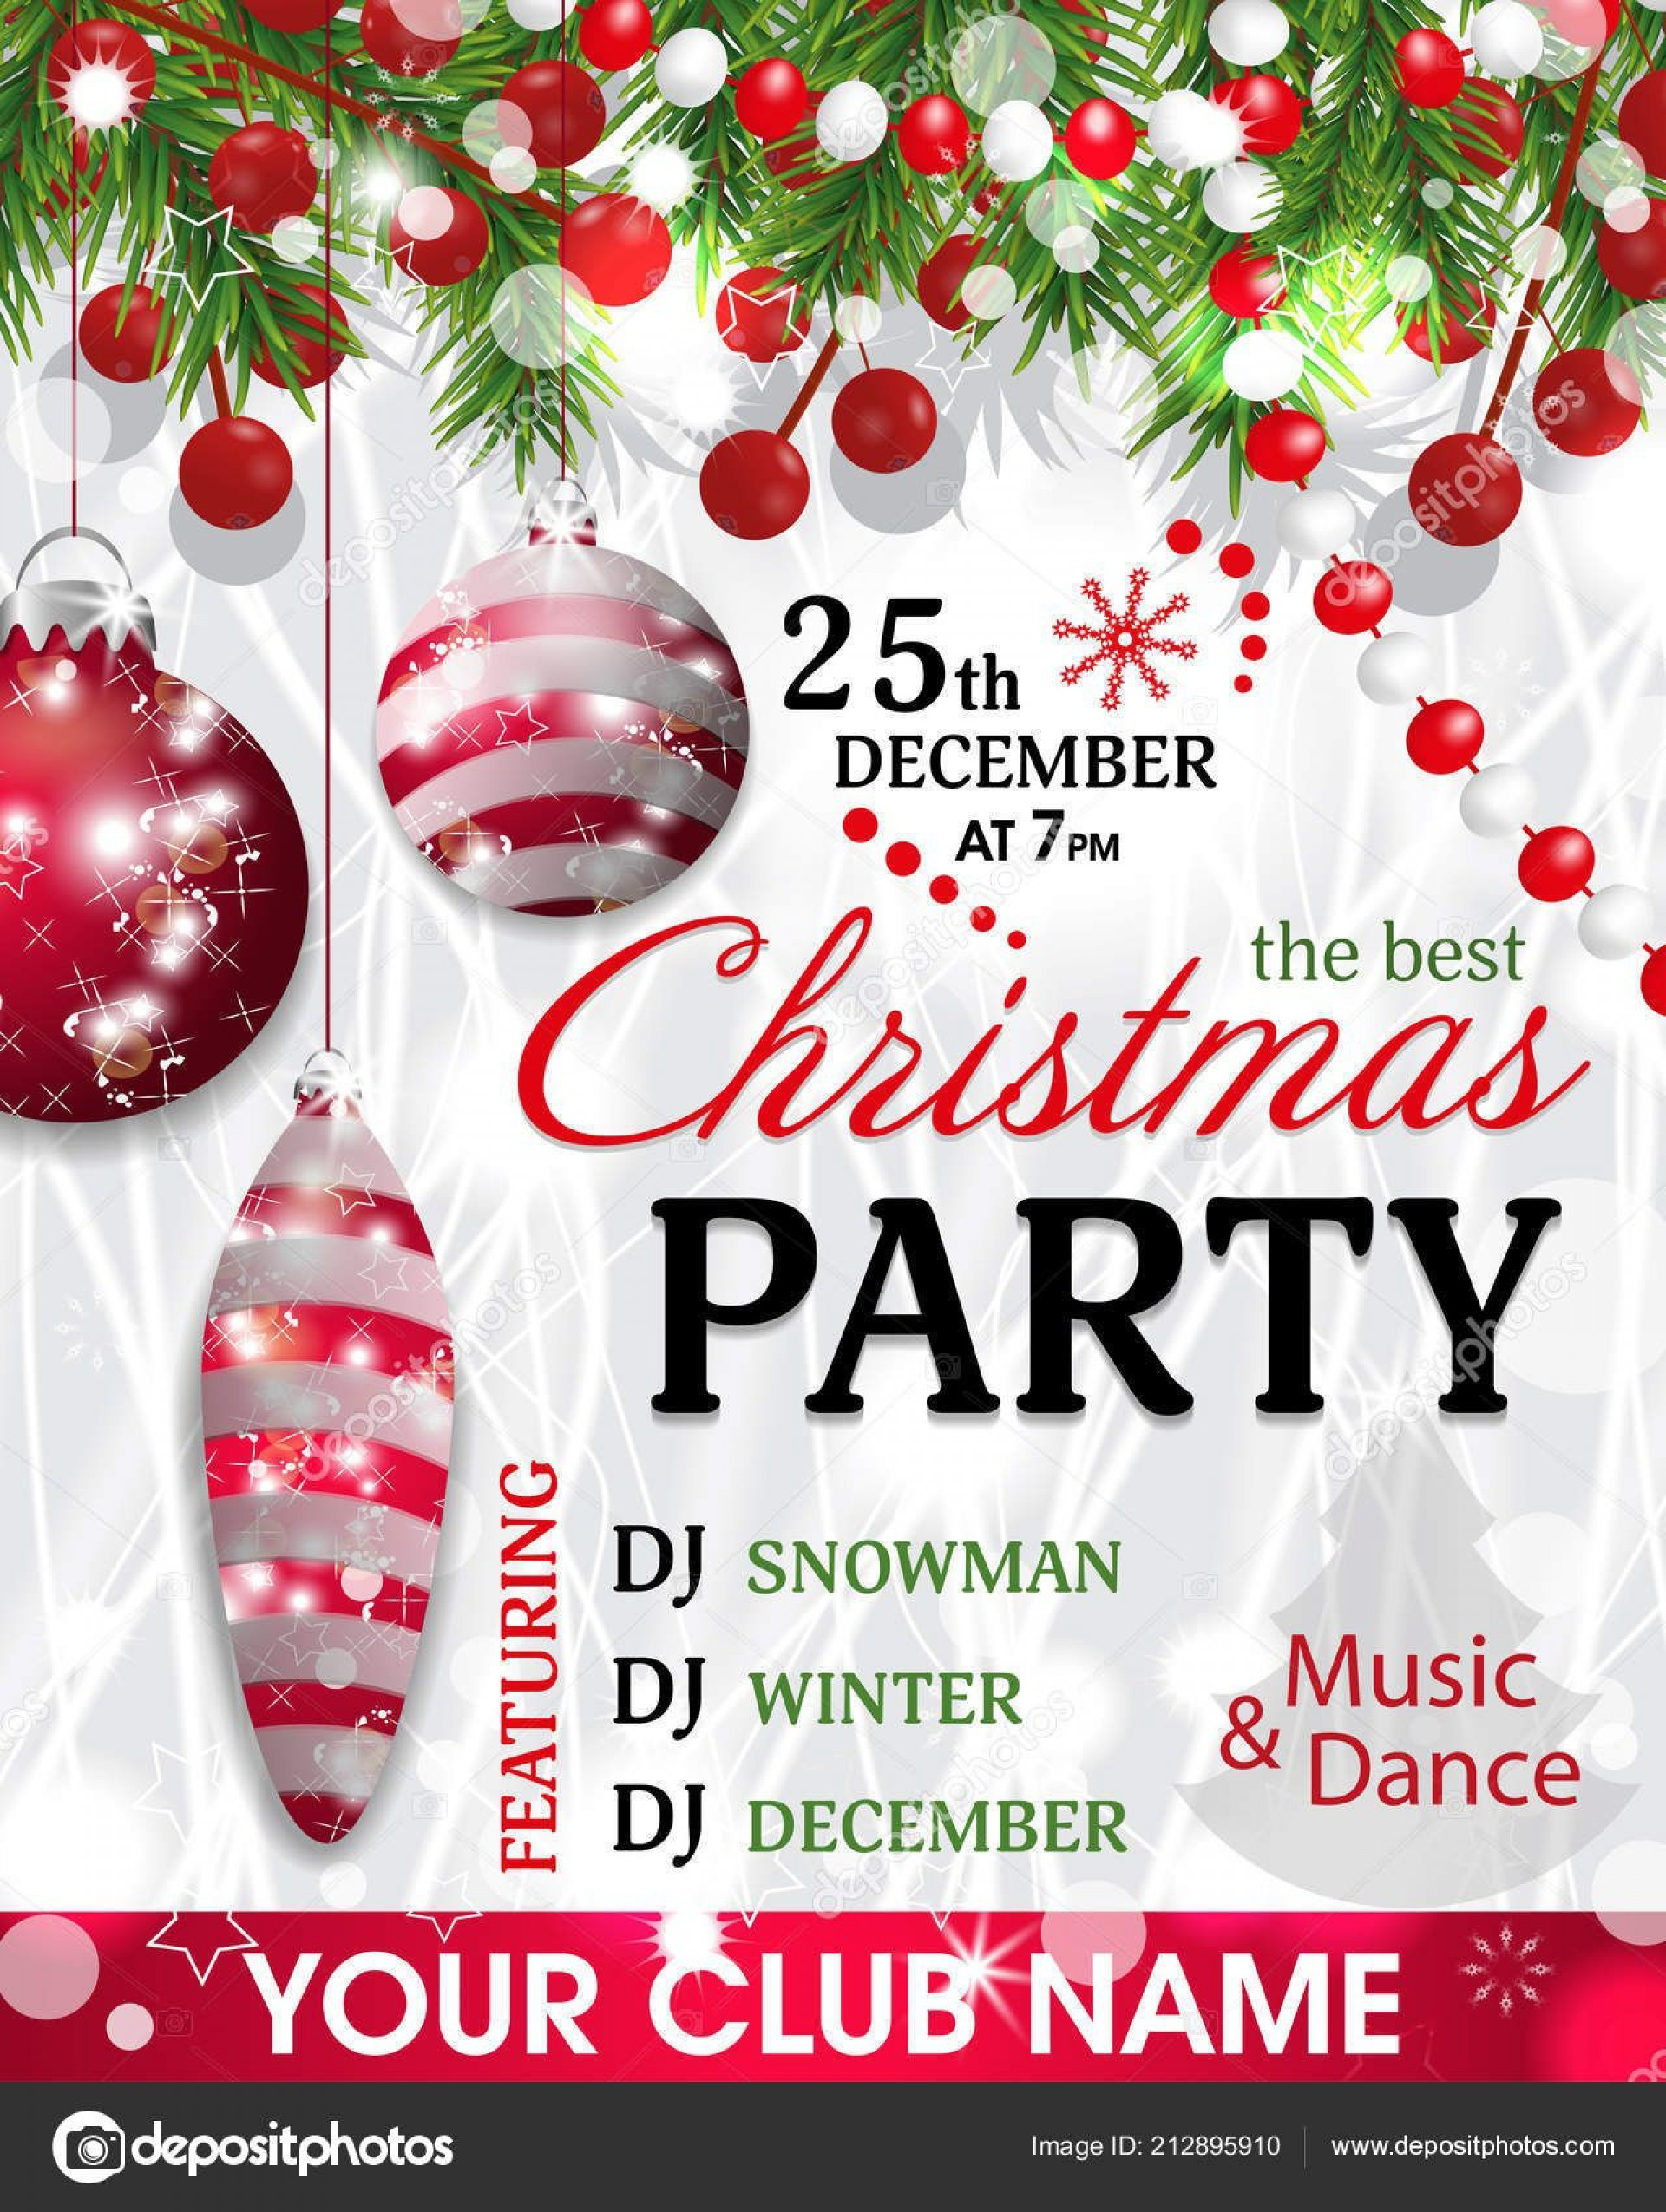 005 Unbelievable Christma Party Invitation Template Design  Funny Free Download Word Card1920